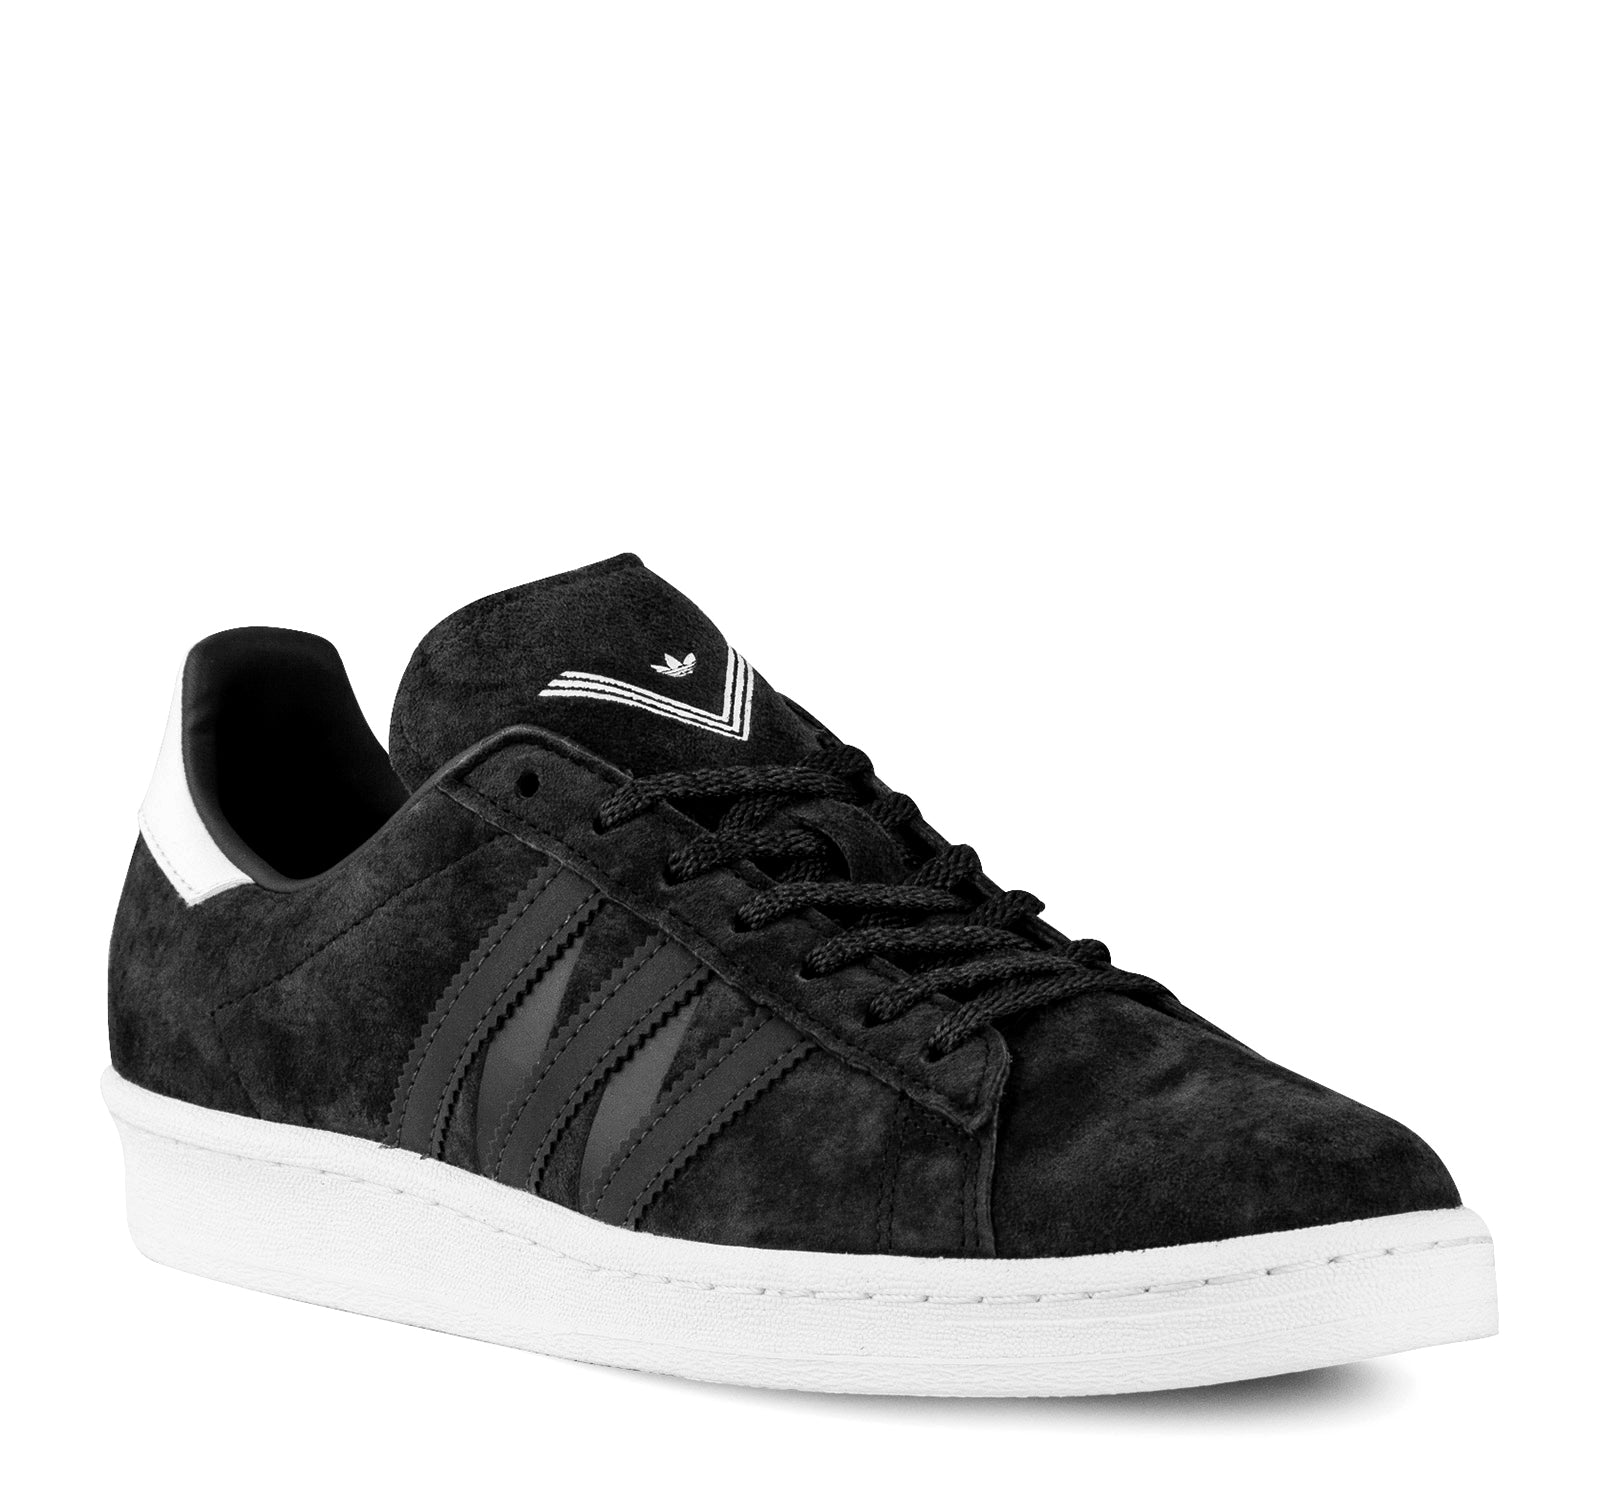 half off 8bc7d 29f42 ... Adidas White Mountaineering Campus 80s BA7516 Mens Sneaker in Black -  Adidas - On The EDGE ...